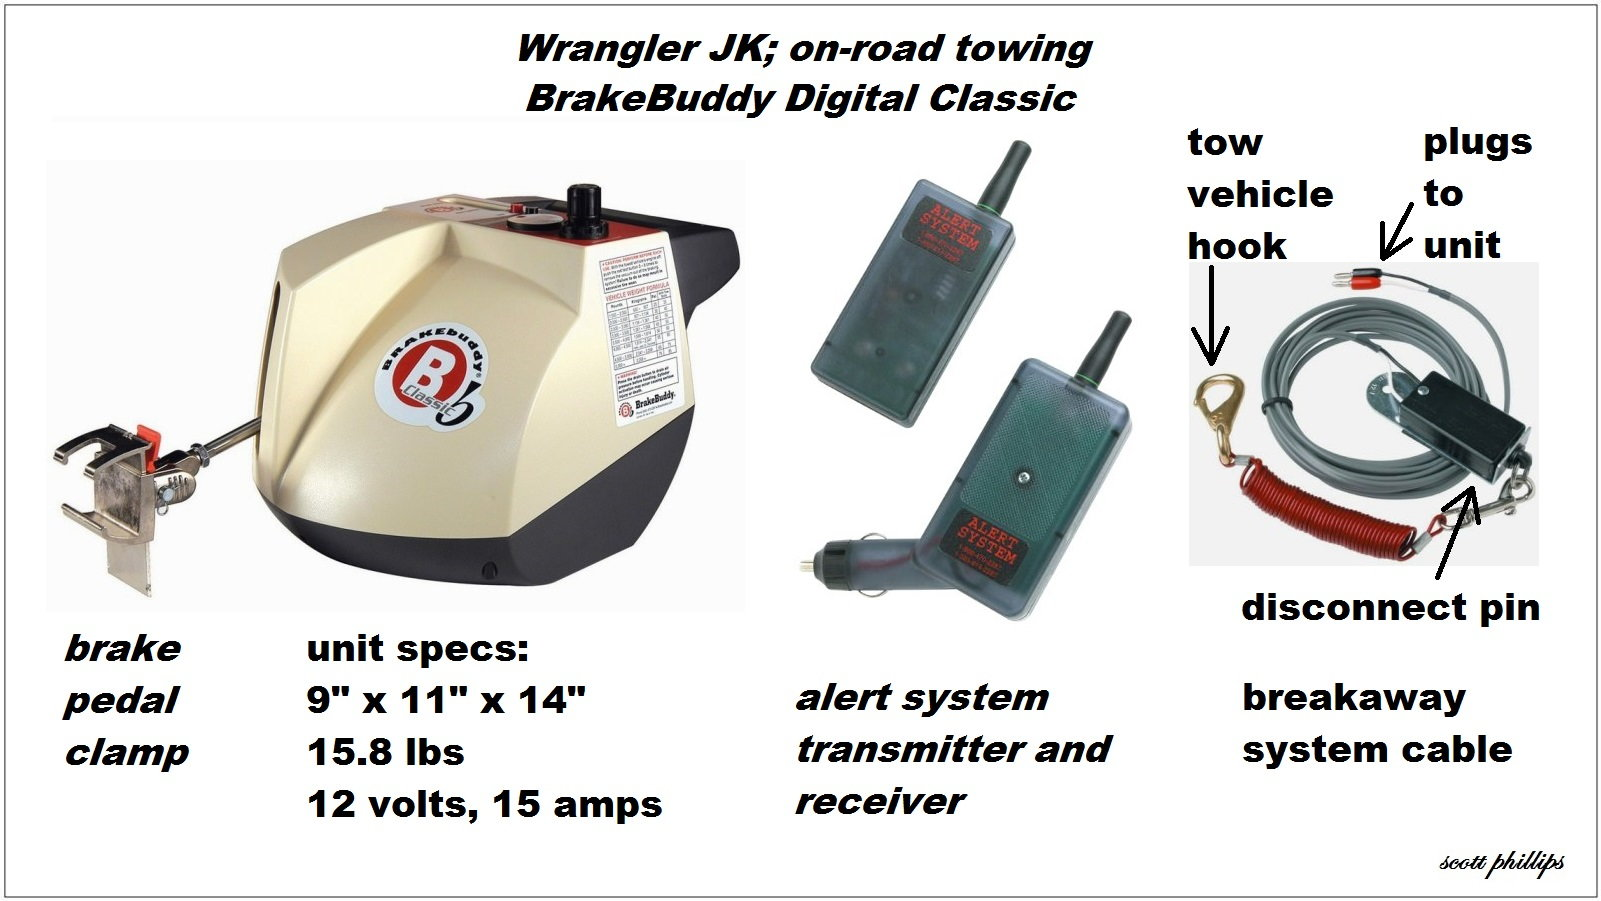 Tow Vehicle Wiring Diagram Starting Know About Brake Buddy Jeep Wrangler Jk How To Two Forum